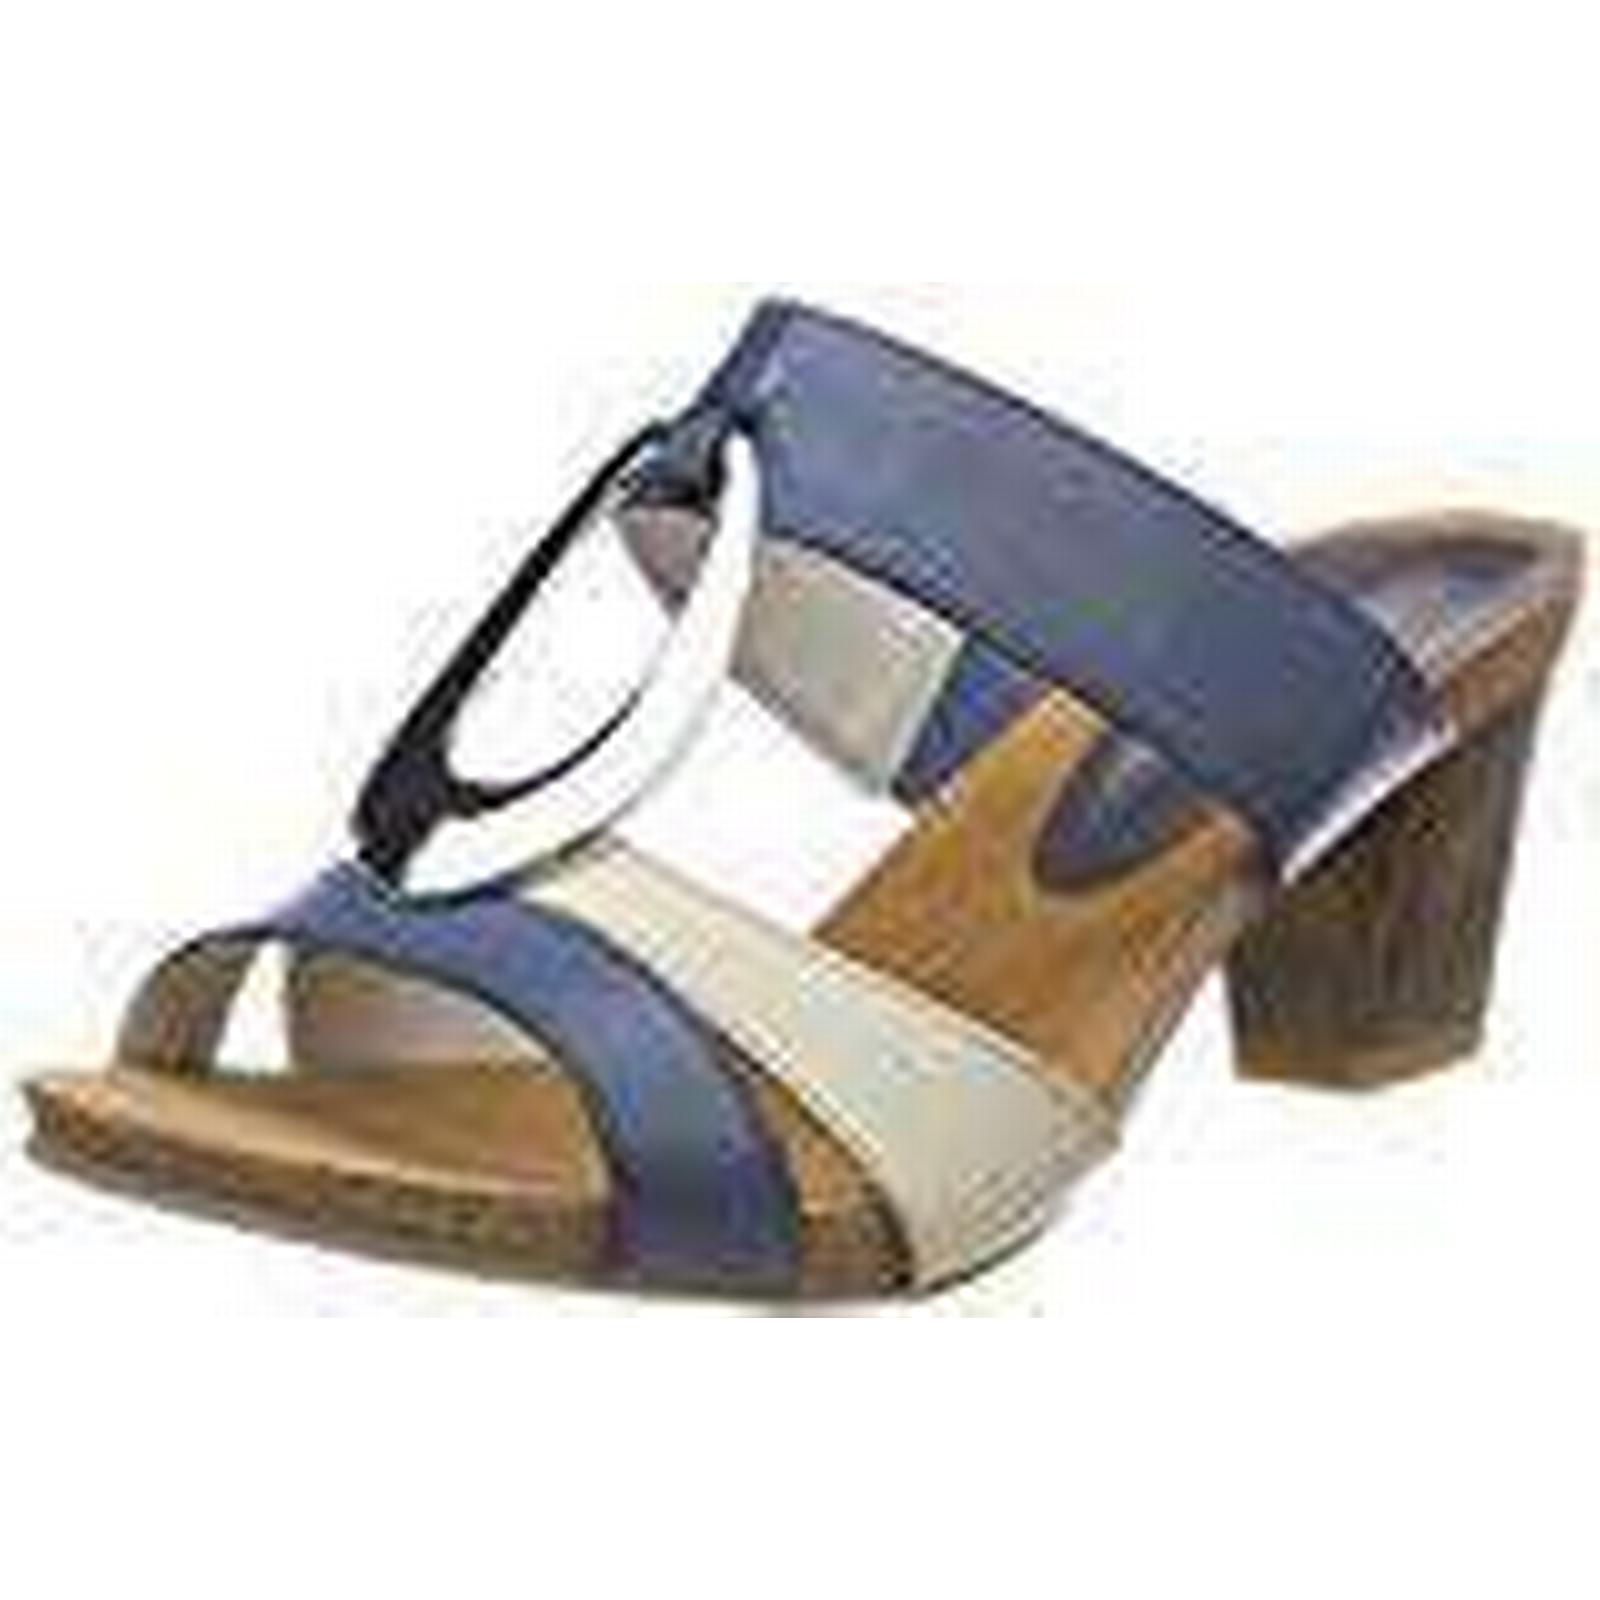 CAPRICE Women''s 27210 Mules, 5 Multicolor (Navy/Beige 878), 5 UK 5 Mules, UK 62991e